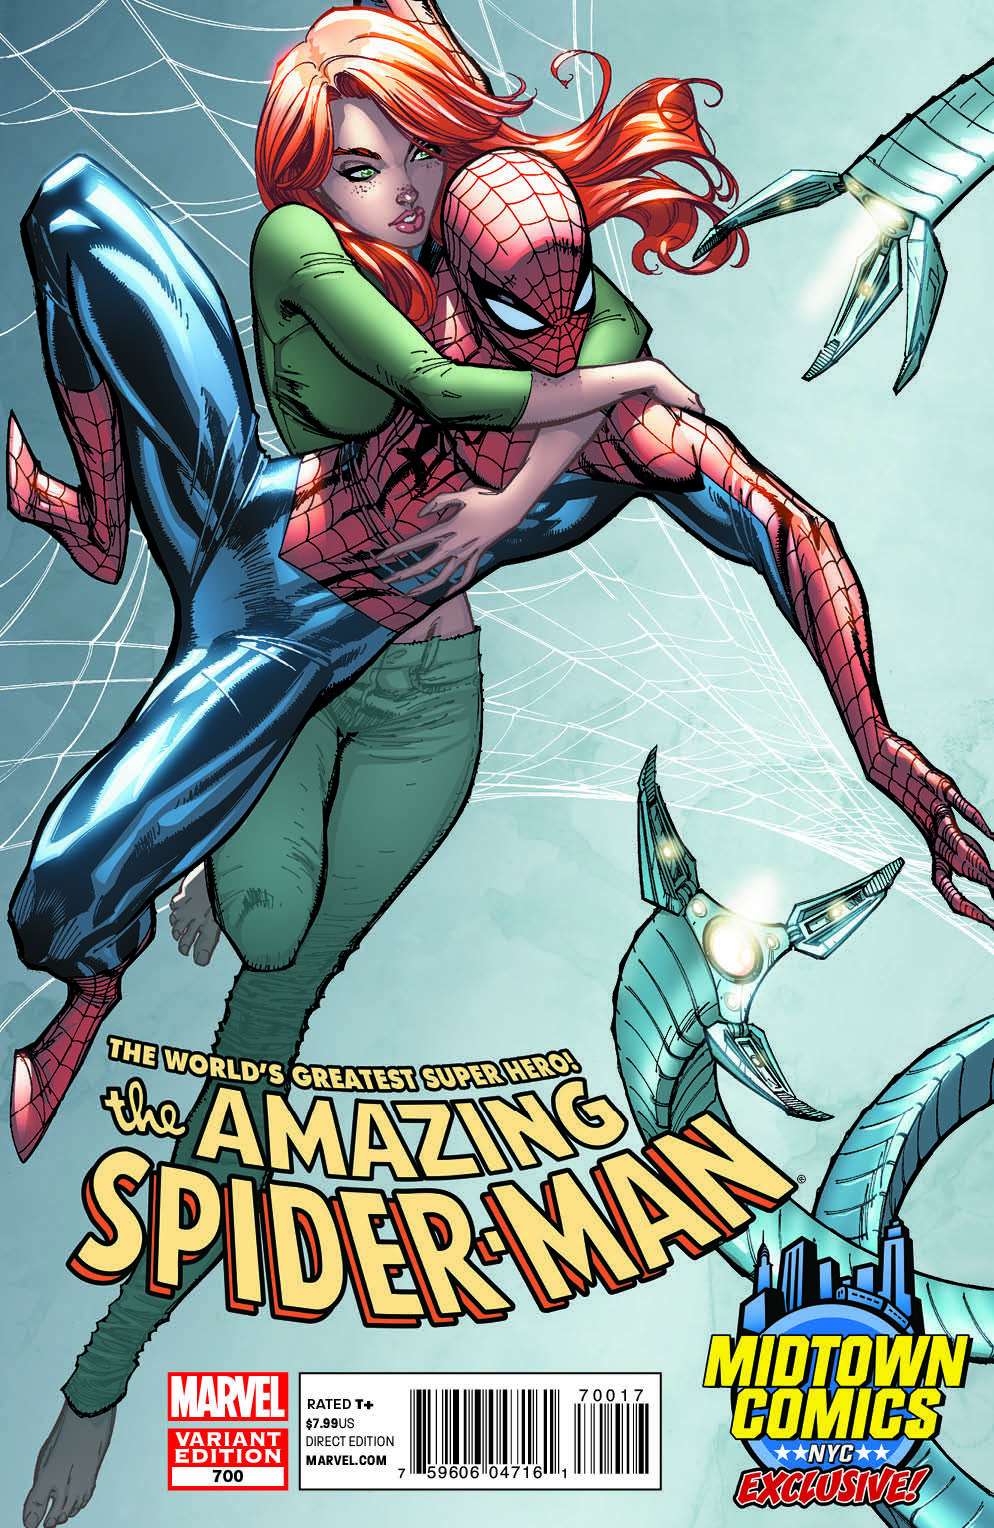 J Scott Campbell Variant of Amazing Spider-Man #700